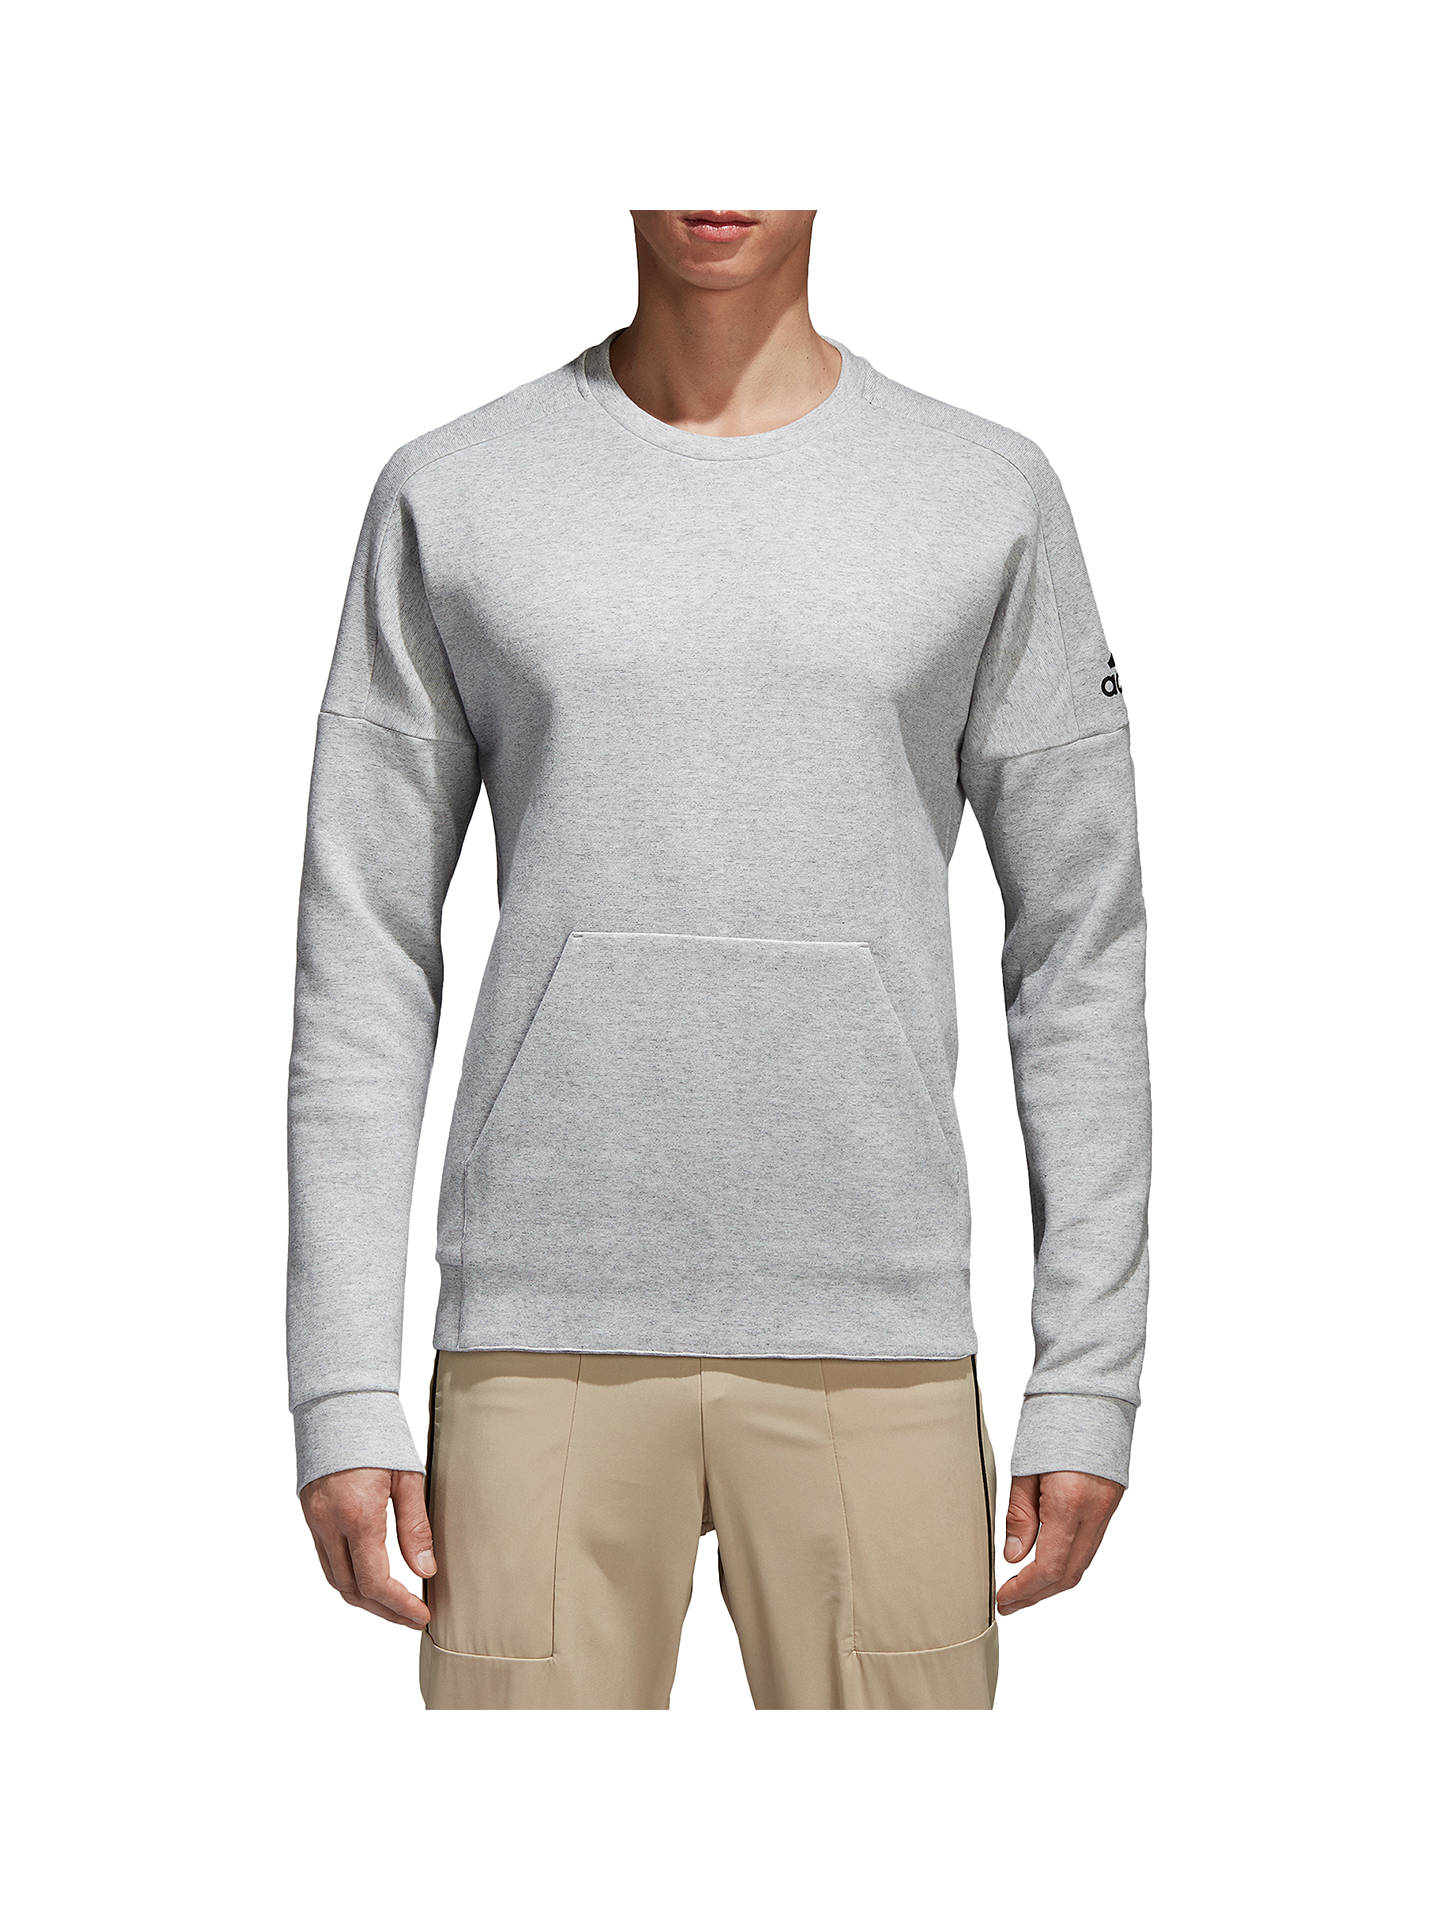 Buyadidas ID Stadium Sweatshirt, Grey Heather, S Online at johnlewis.com